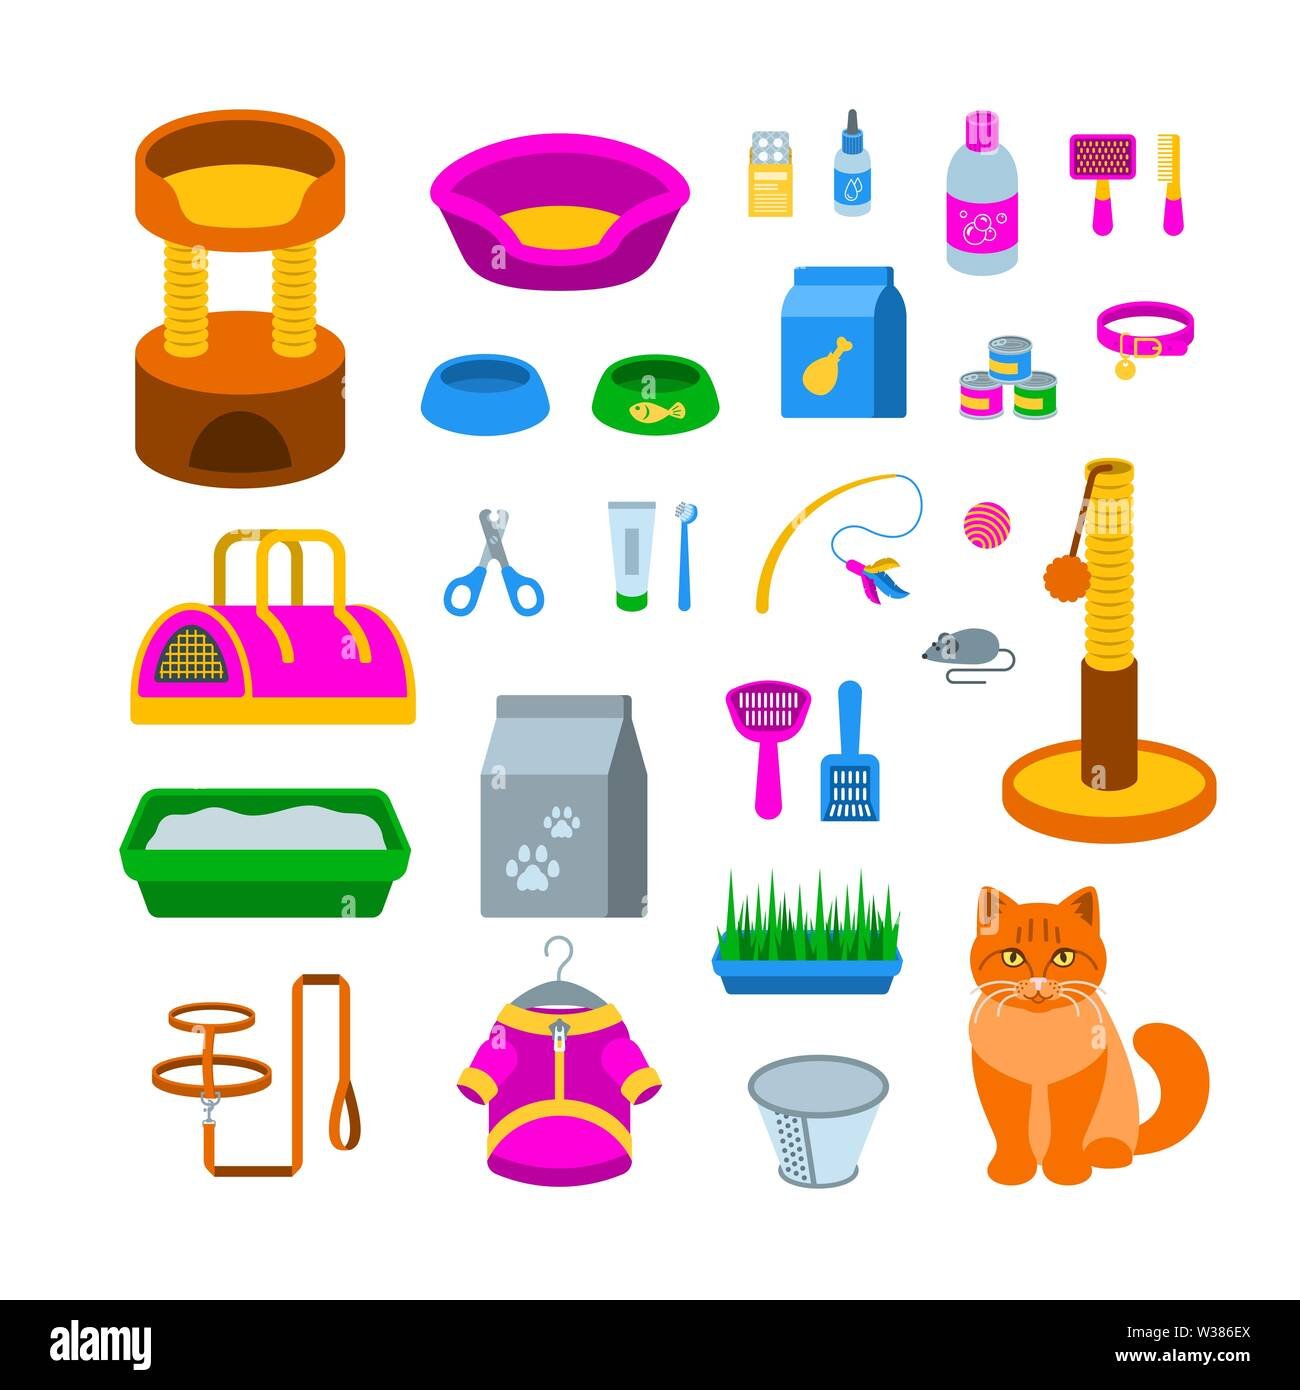 Cat accessories vector flat icons. Pet shop equipment cartoon illustration. Domestic animal care supplies. Items for feeding, grooming, playing - Stock Image